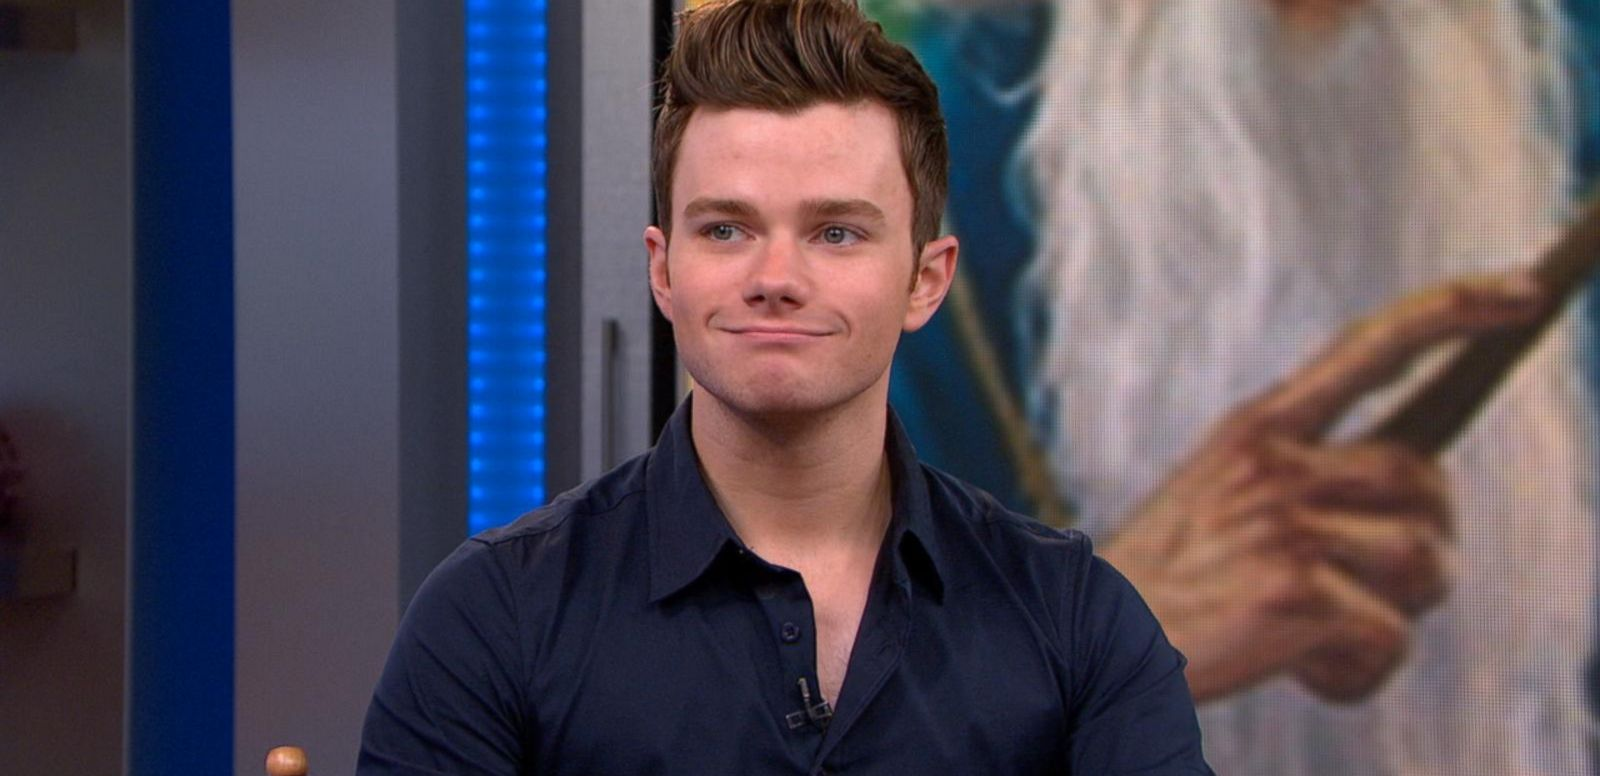 VIDEO: Chris Colfer Describes His Latest Fantasy Novel From the 'Land of Stories' Series